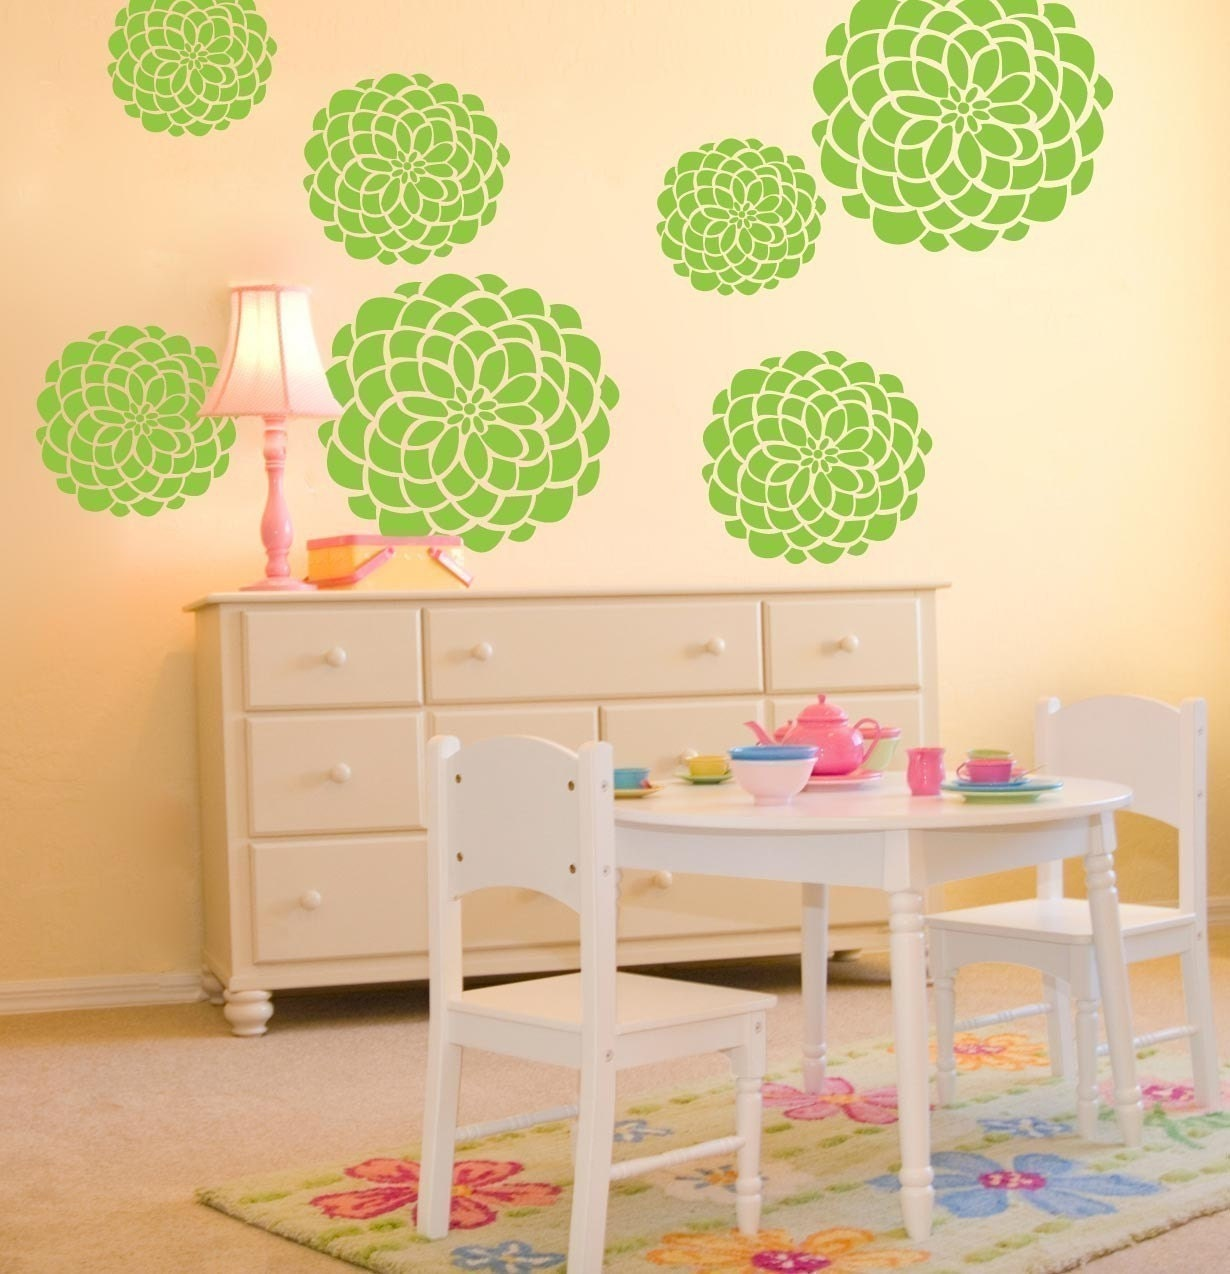 Vinyl wall decals 7 large flower bloom graphics variety of zoom amipublicfo Gallery